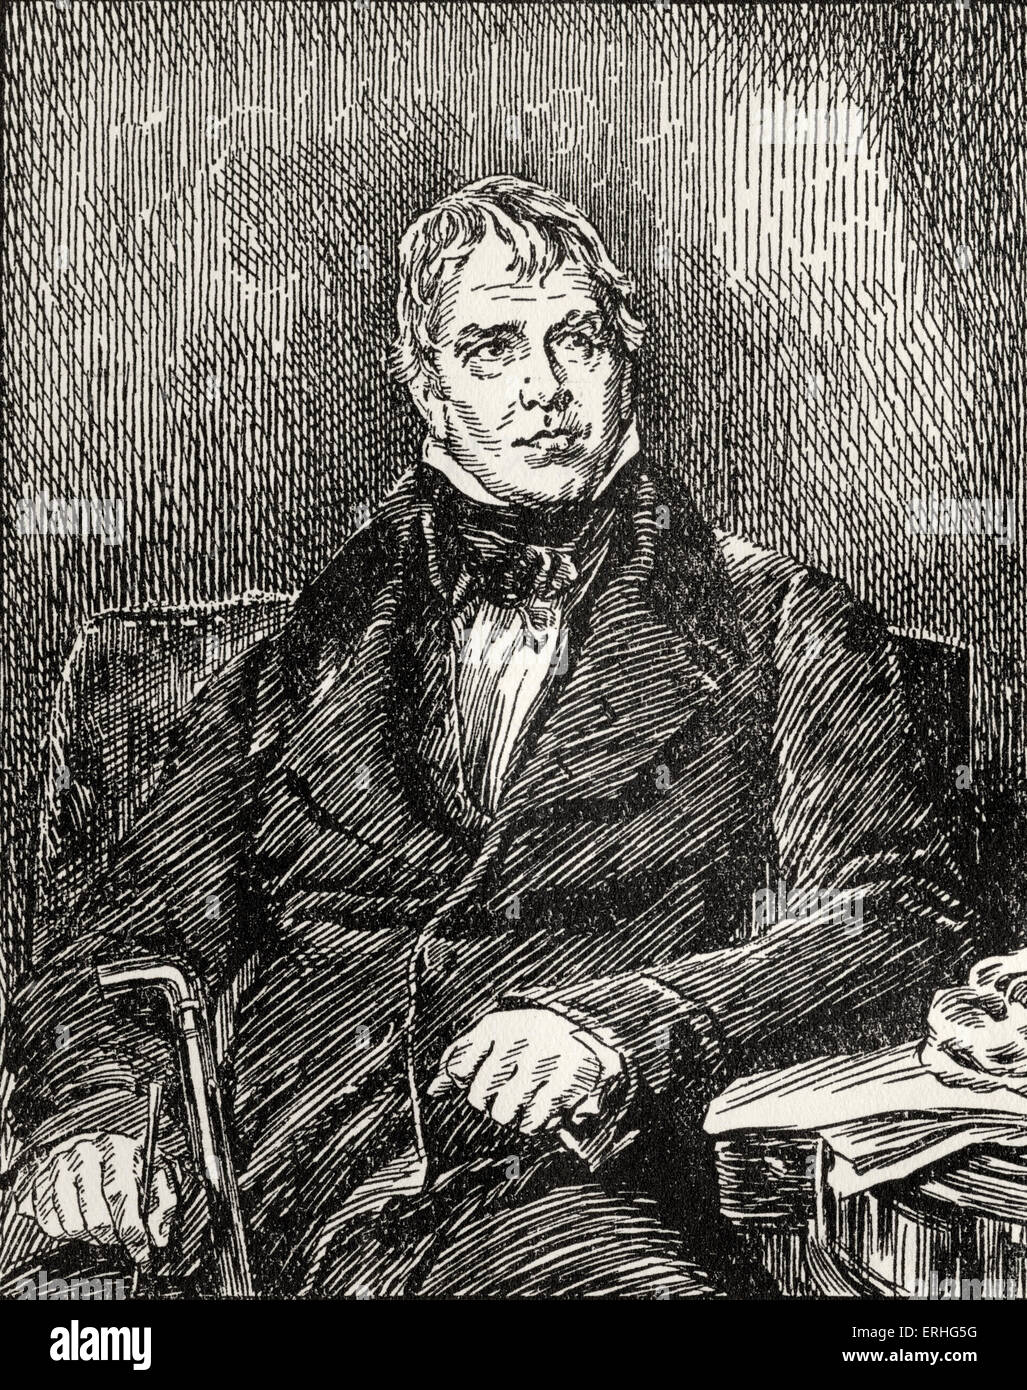 Sir Walter Scott, - portrait of the Scottish writer and poet. 14 August 1771 - 21 September 1832. A drawing from - Stock Image